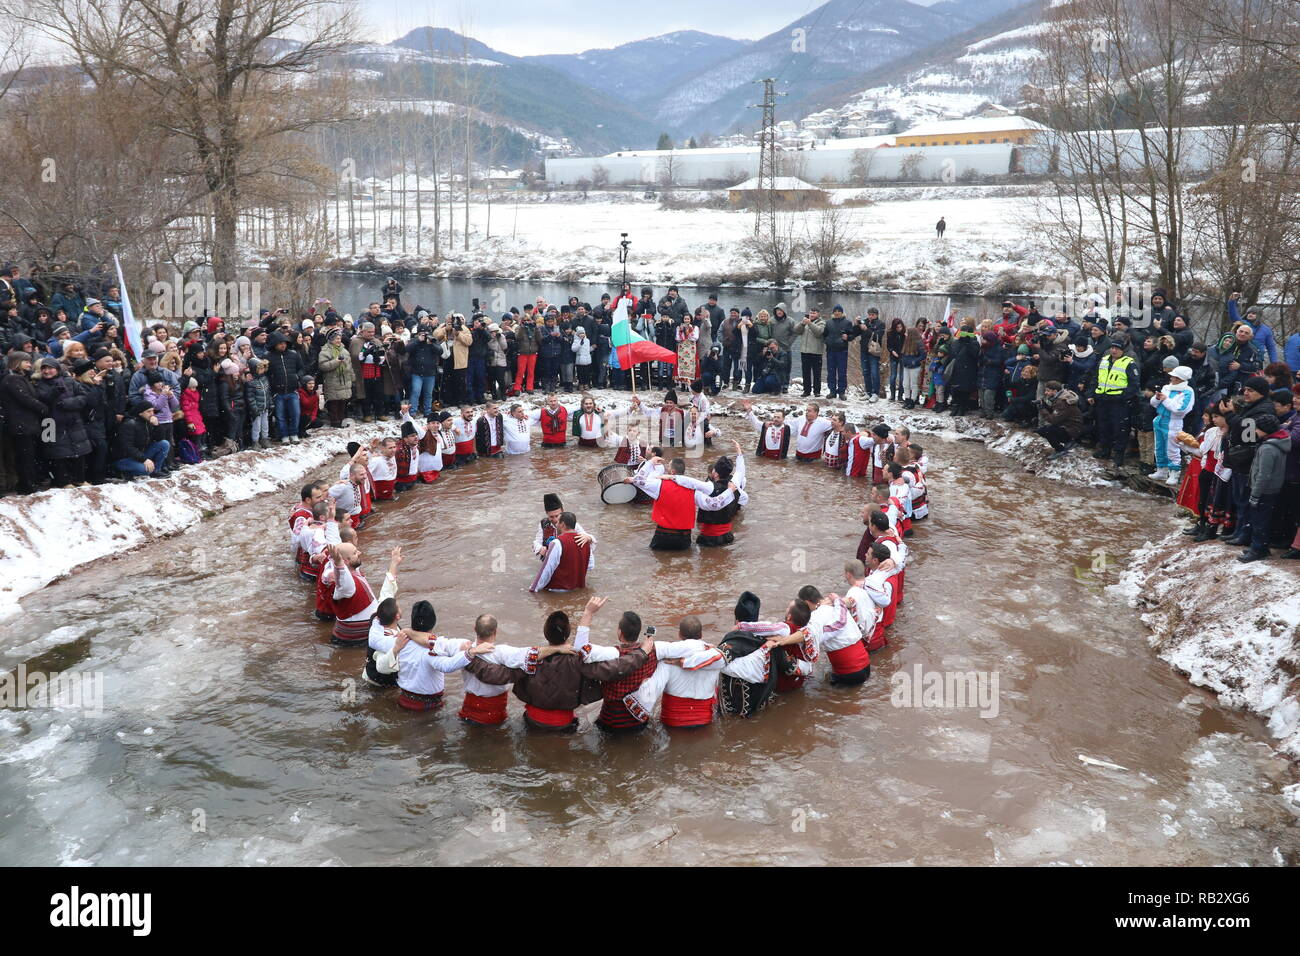 Zverino, Bulgaria. January 6, 2019: People perform the national dance 'Horo' in the icy waters of the river Iskar in the village of Zverino, during celebrations of the Epiphany day on 6 January 2019. Credit: GeorgiD/Alamy Live News - Stock Image